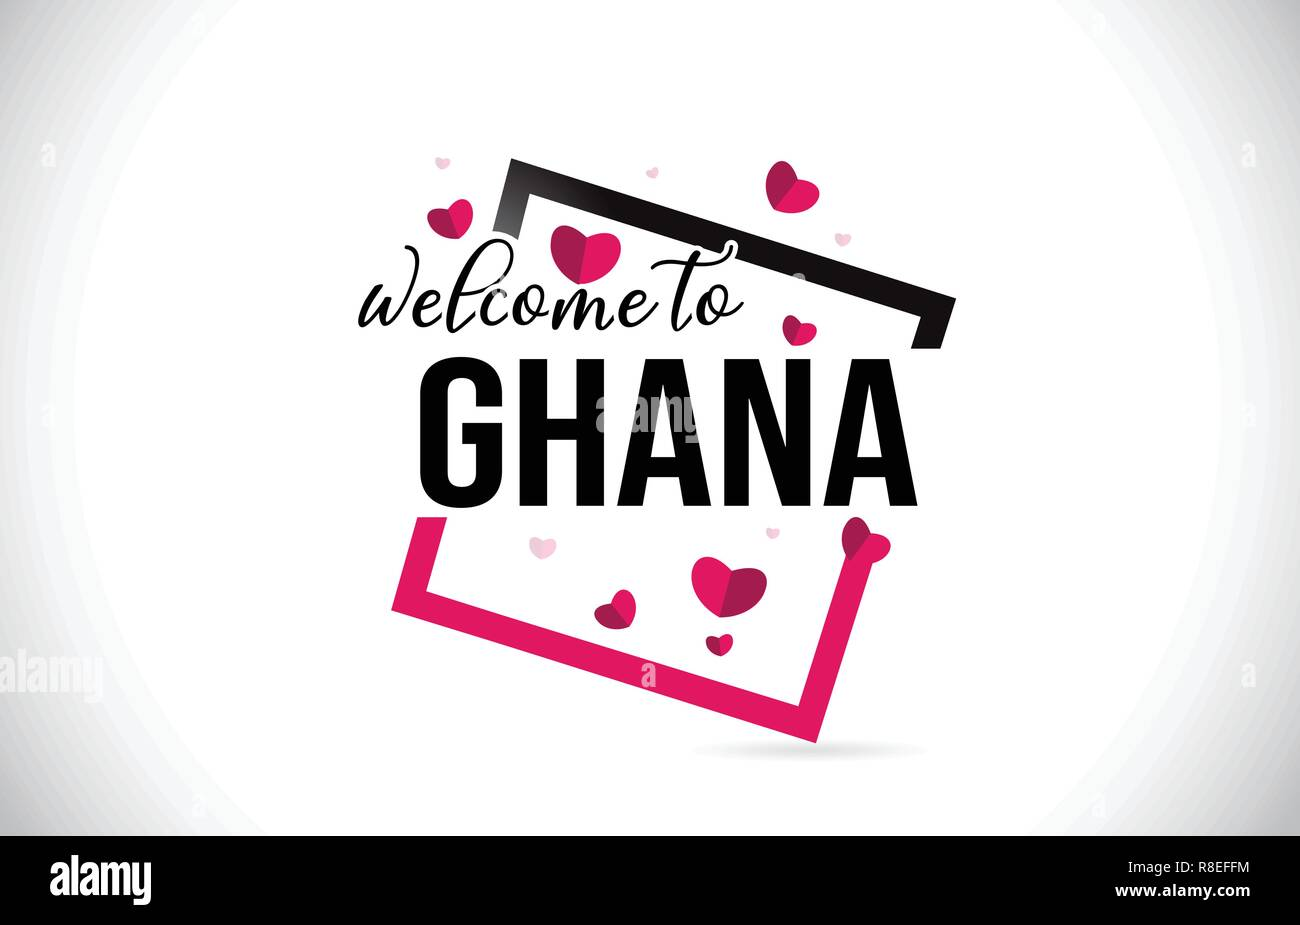 Ghana Welcome To Word Text with Handwritten Font and  Red Hearts Square Design Illustration Vector. - Stock Vector